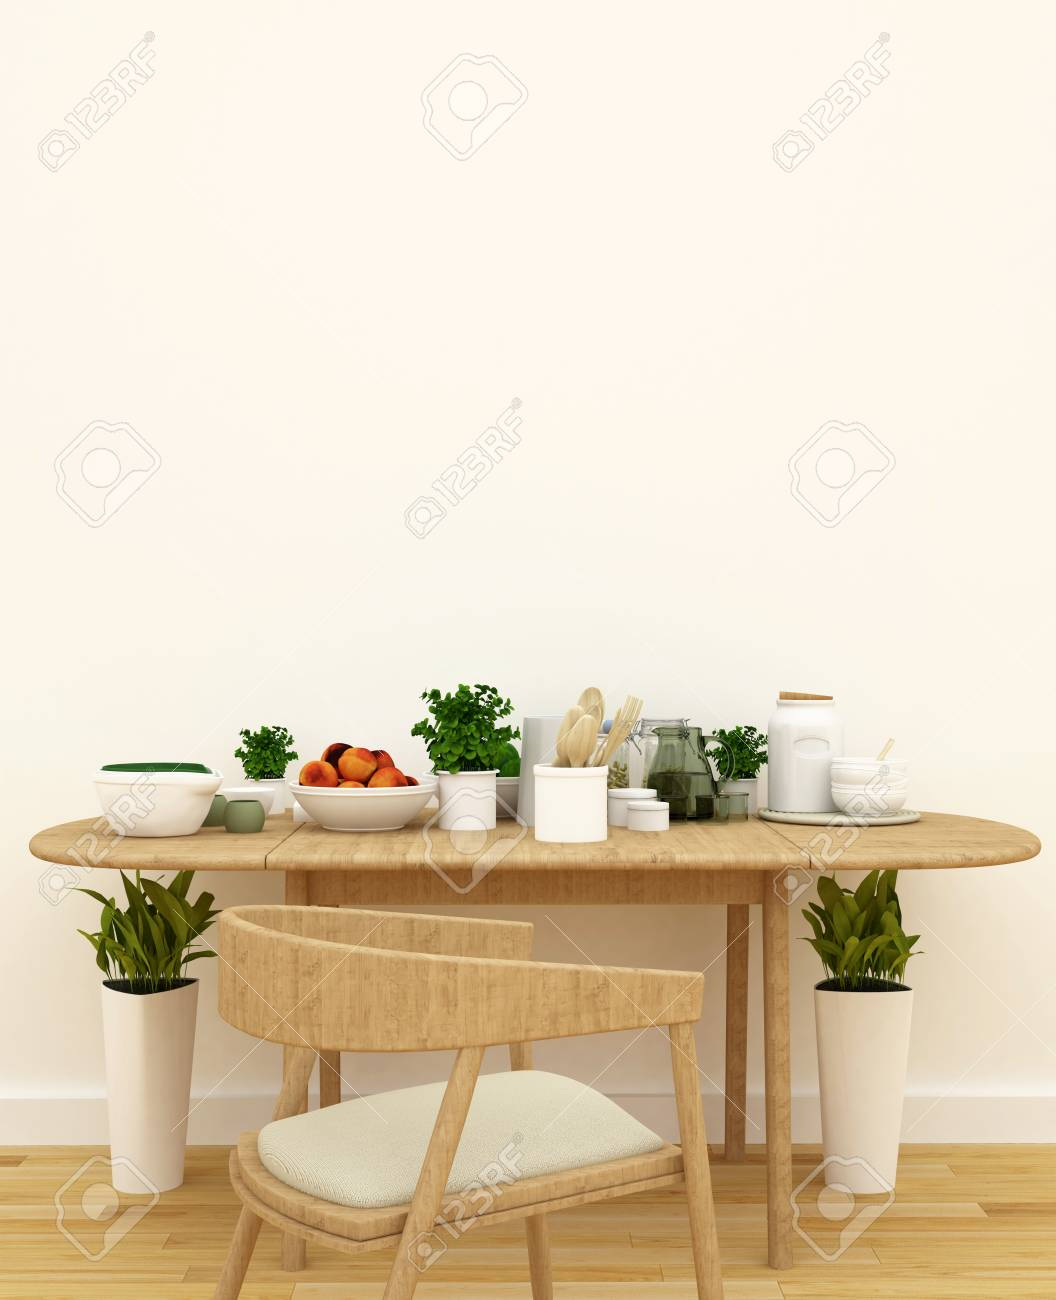 Kitchen Set In Pantry Area 3d Rendering Stock Photo Picture And